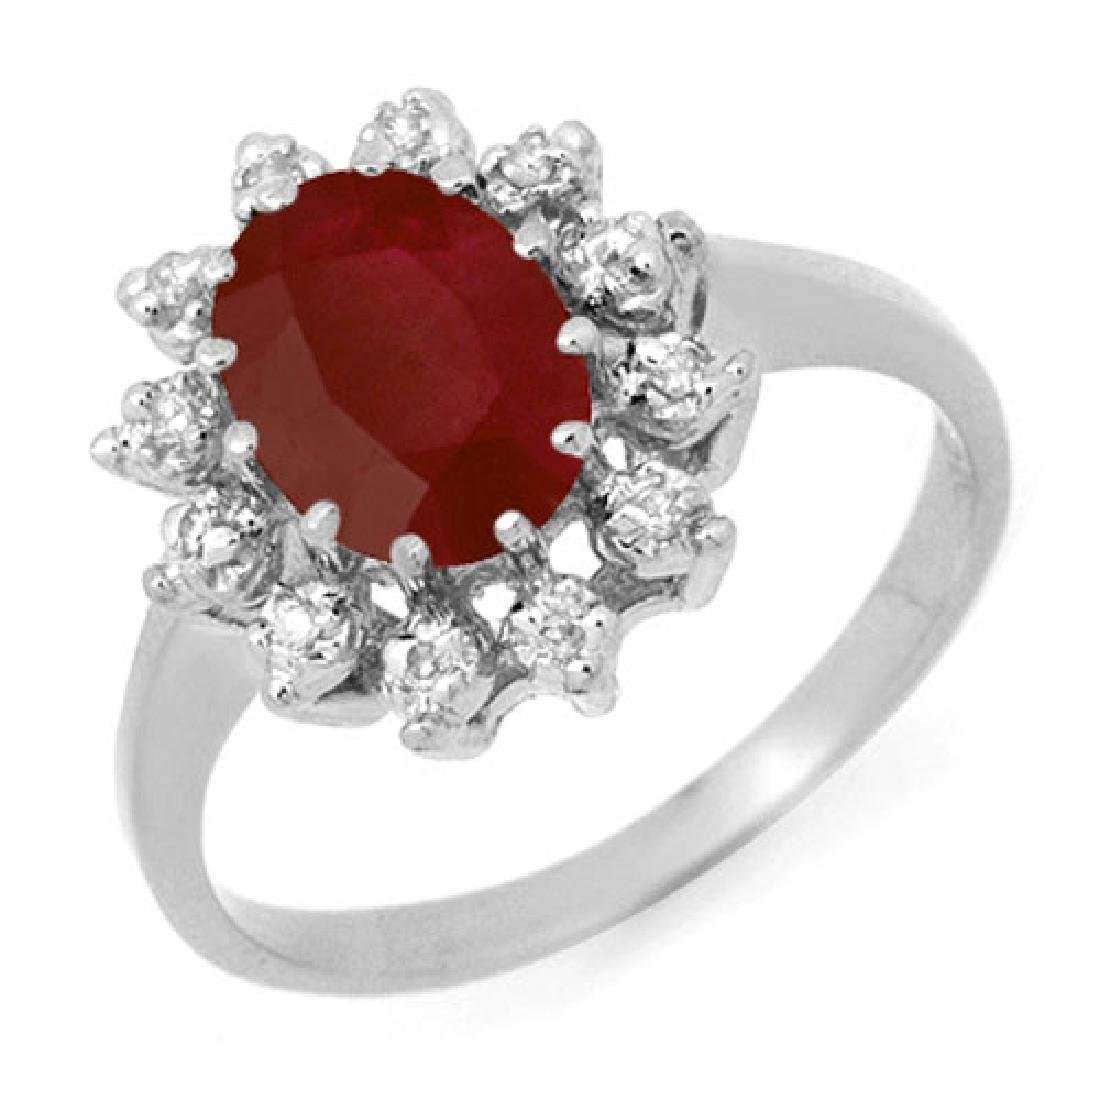 1.22 CTW Ruby & Diamond Ring 10K White Gold